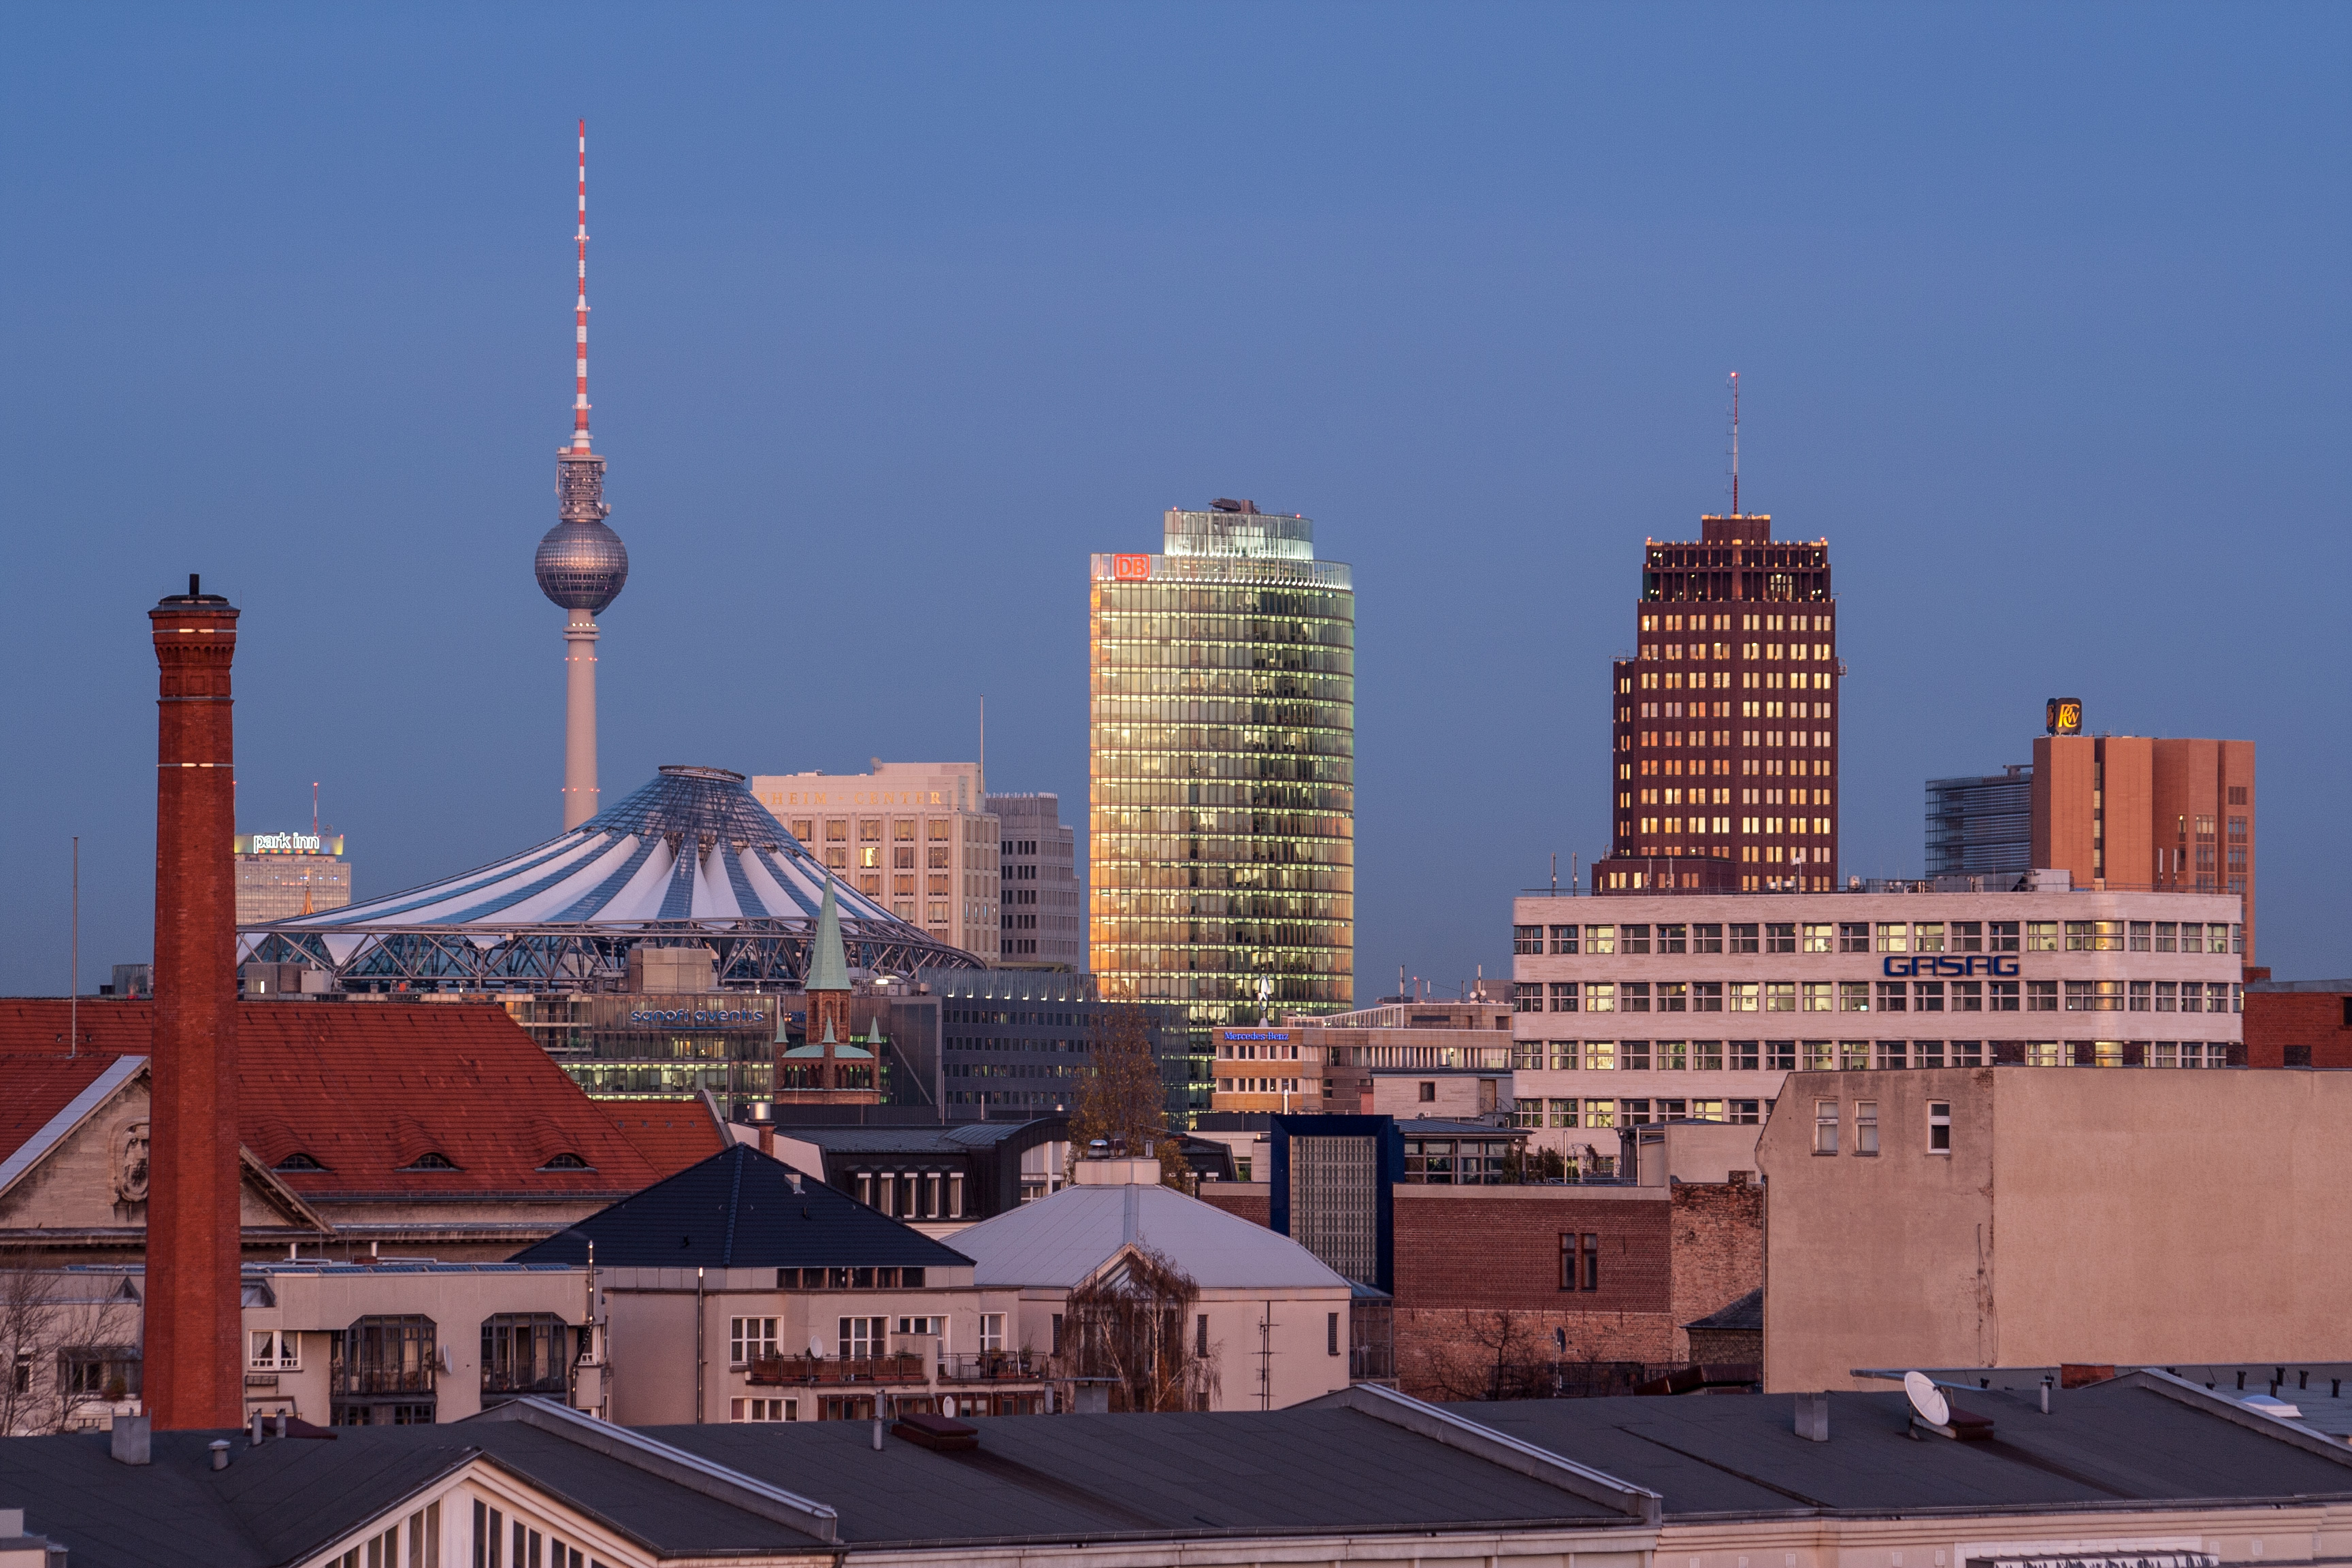 Potsdamer Platz and a television tower in Berlin, Germany